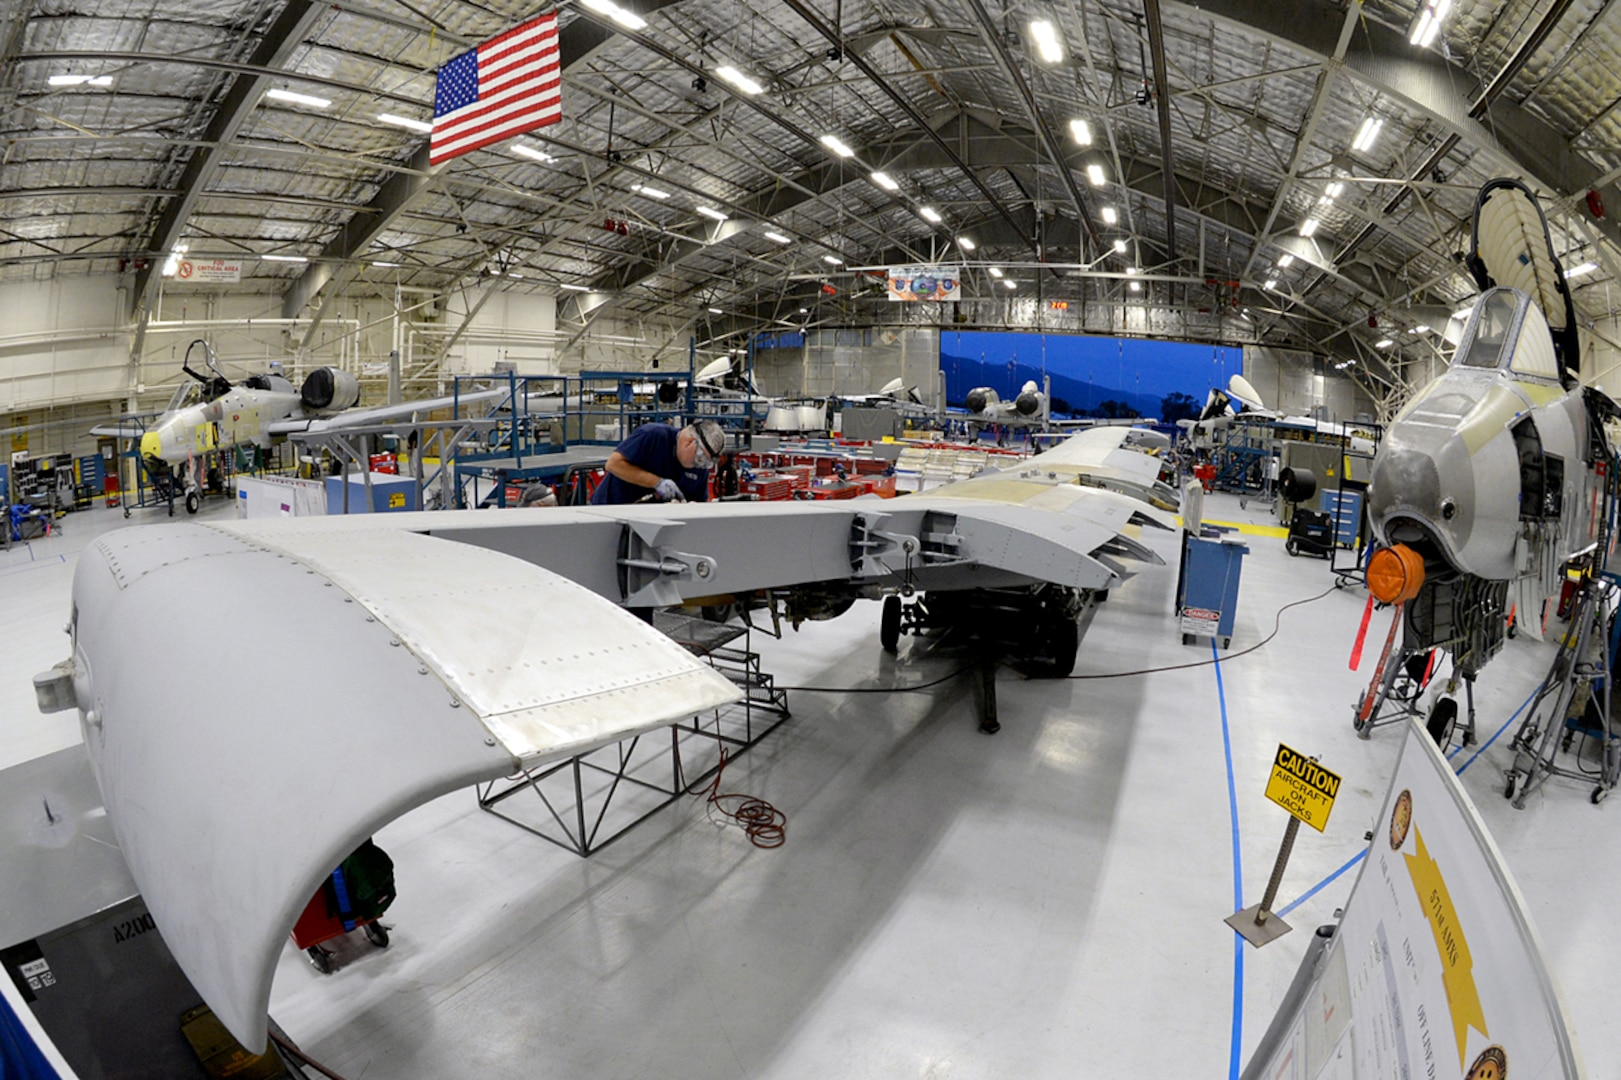 Wide-angle image of maintenance facility with mechanic working on an aircraft wing.